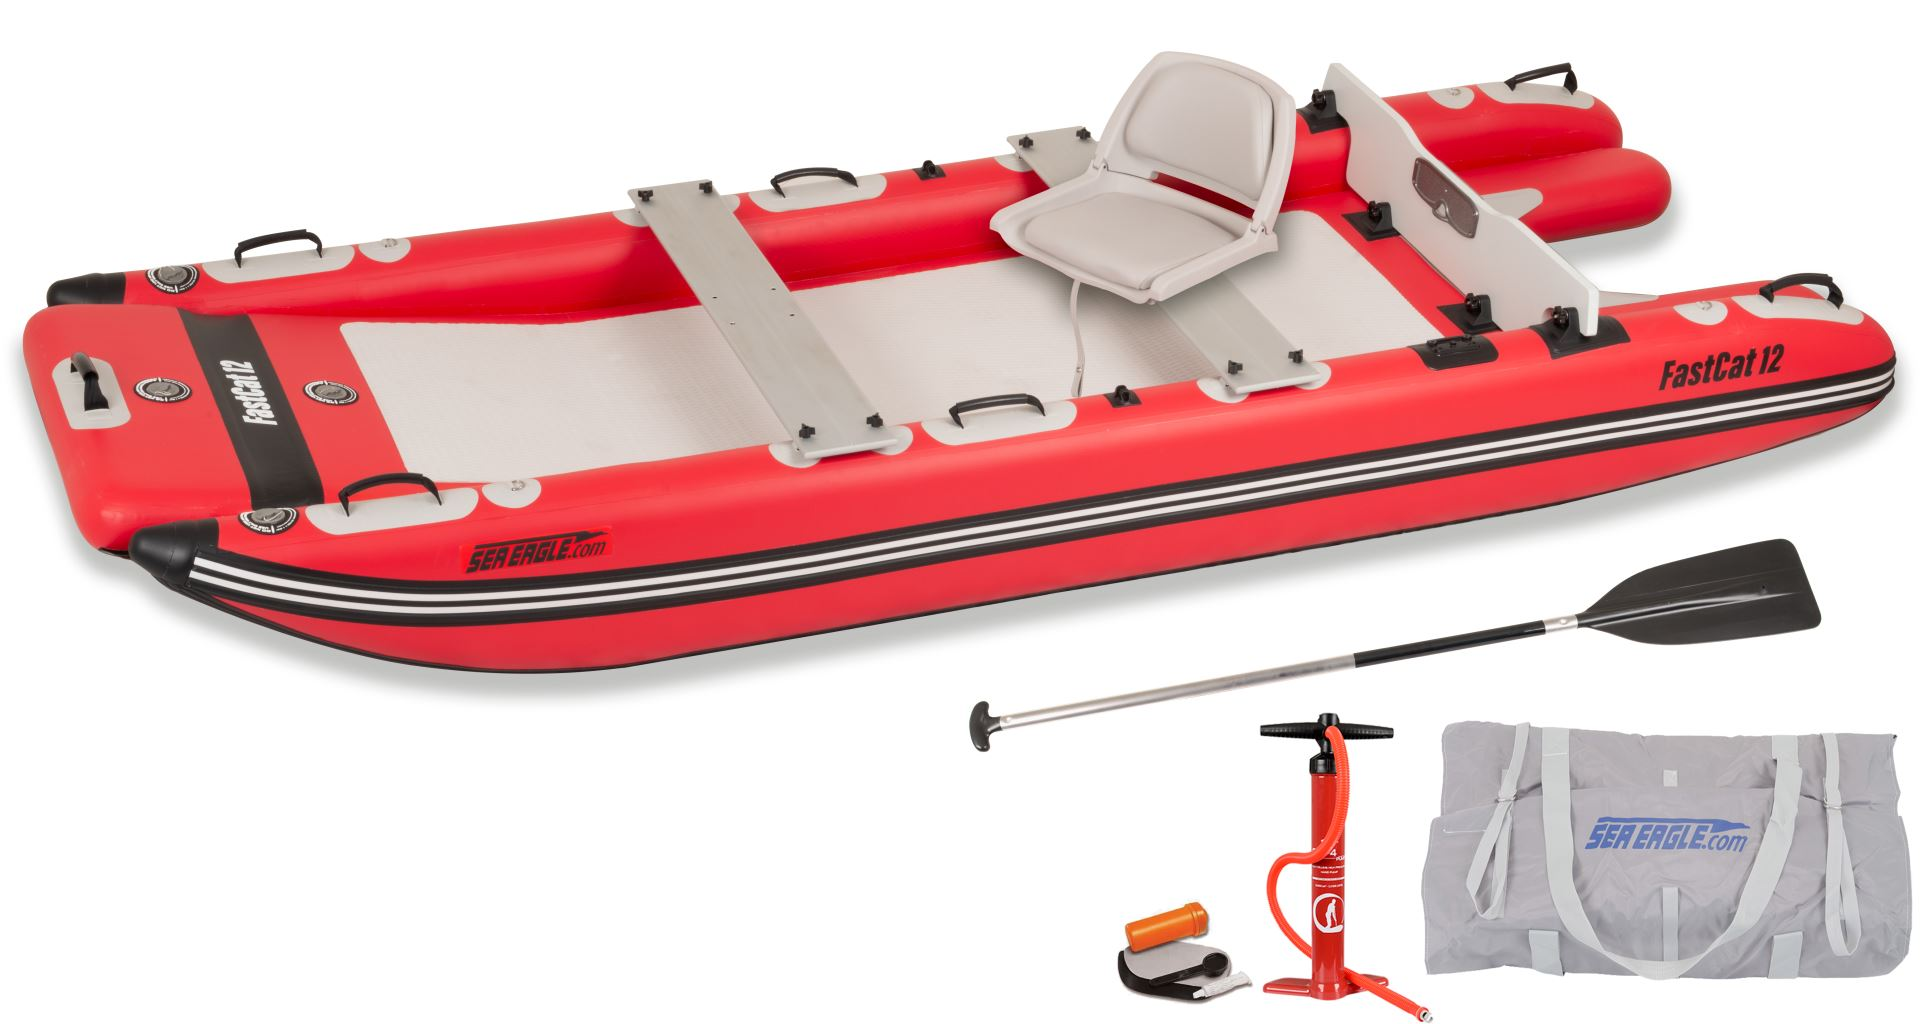 NEW FOR 2021 Sea Eagle FastCat™ 12 Catamaran Inflatable Boat